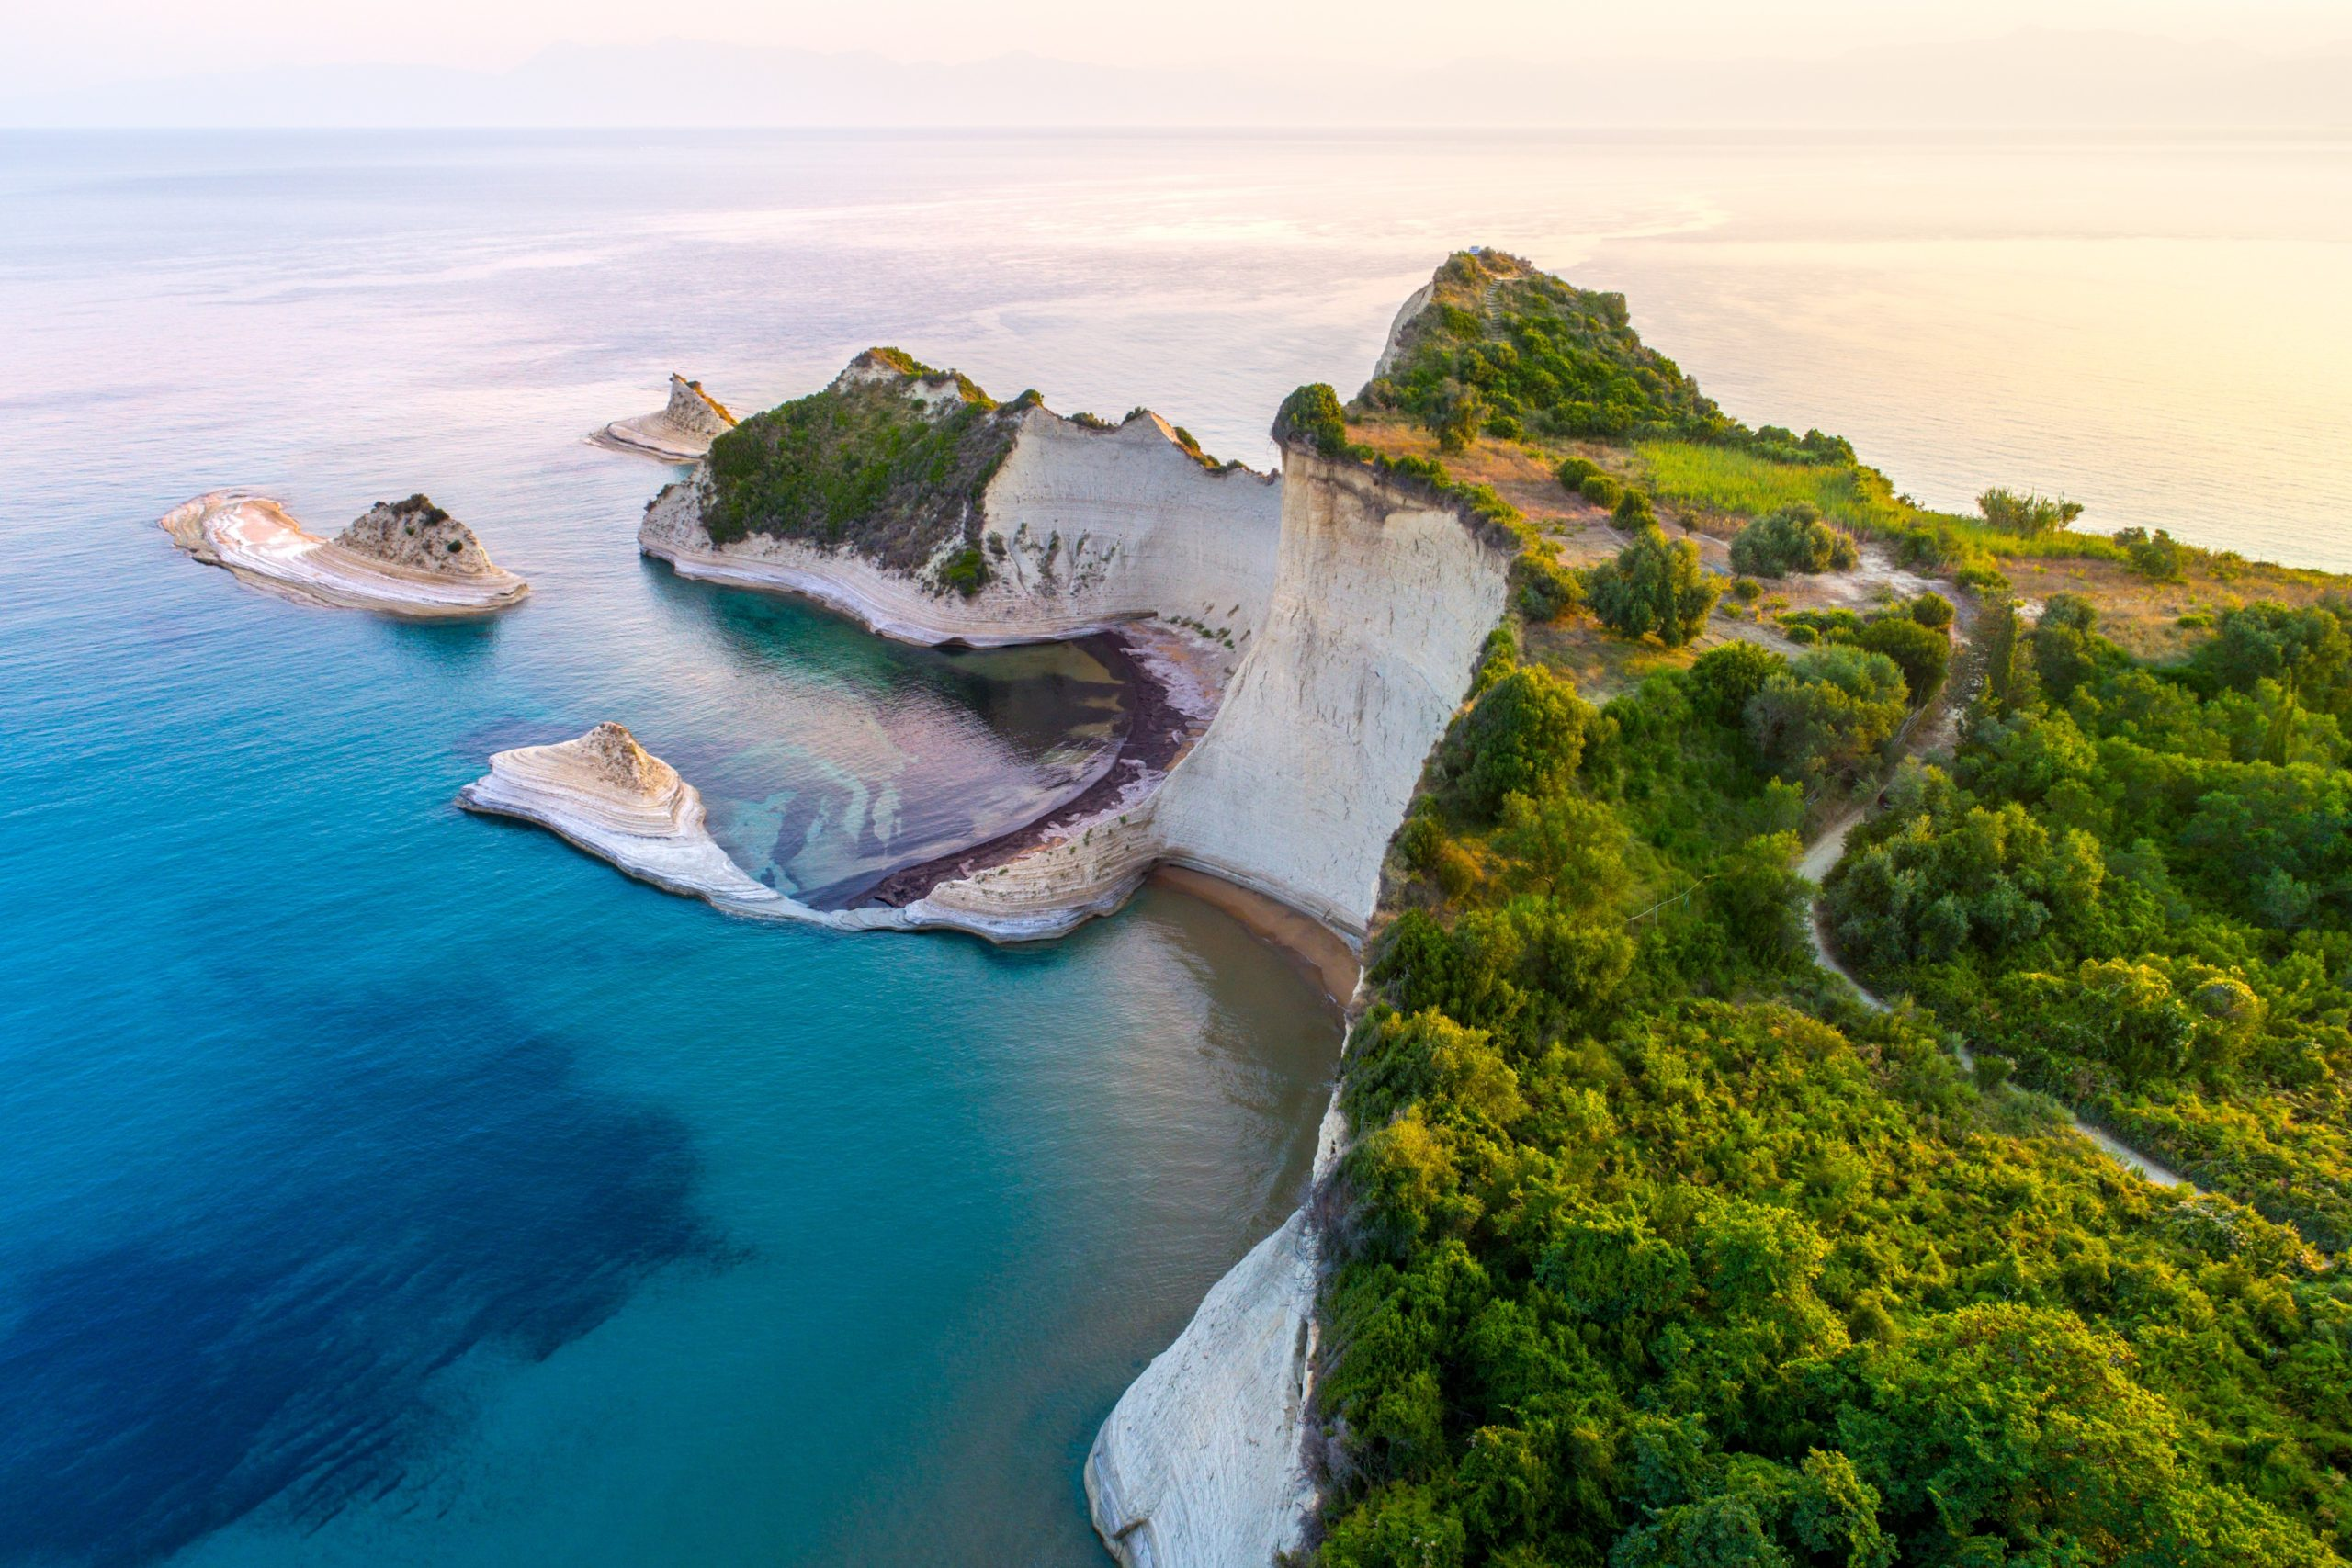 Aerial view of the cliffs in Corfu